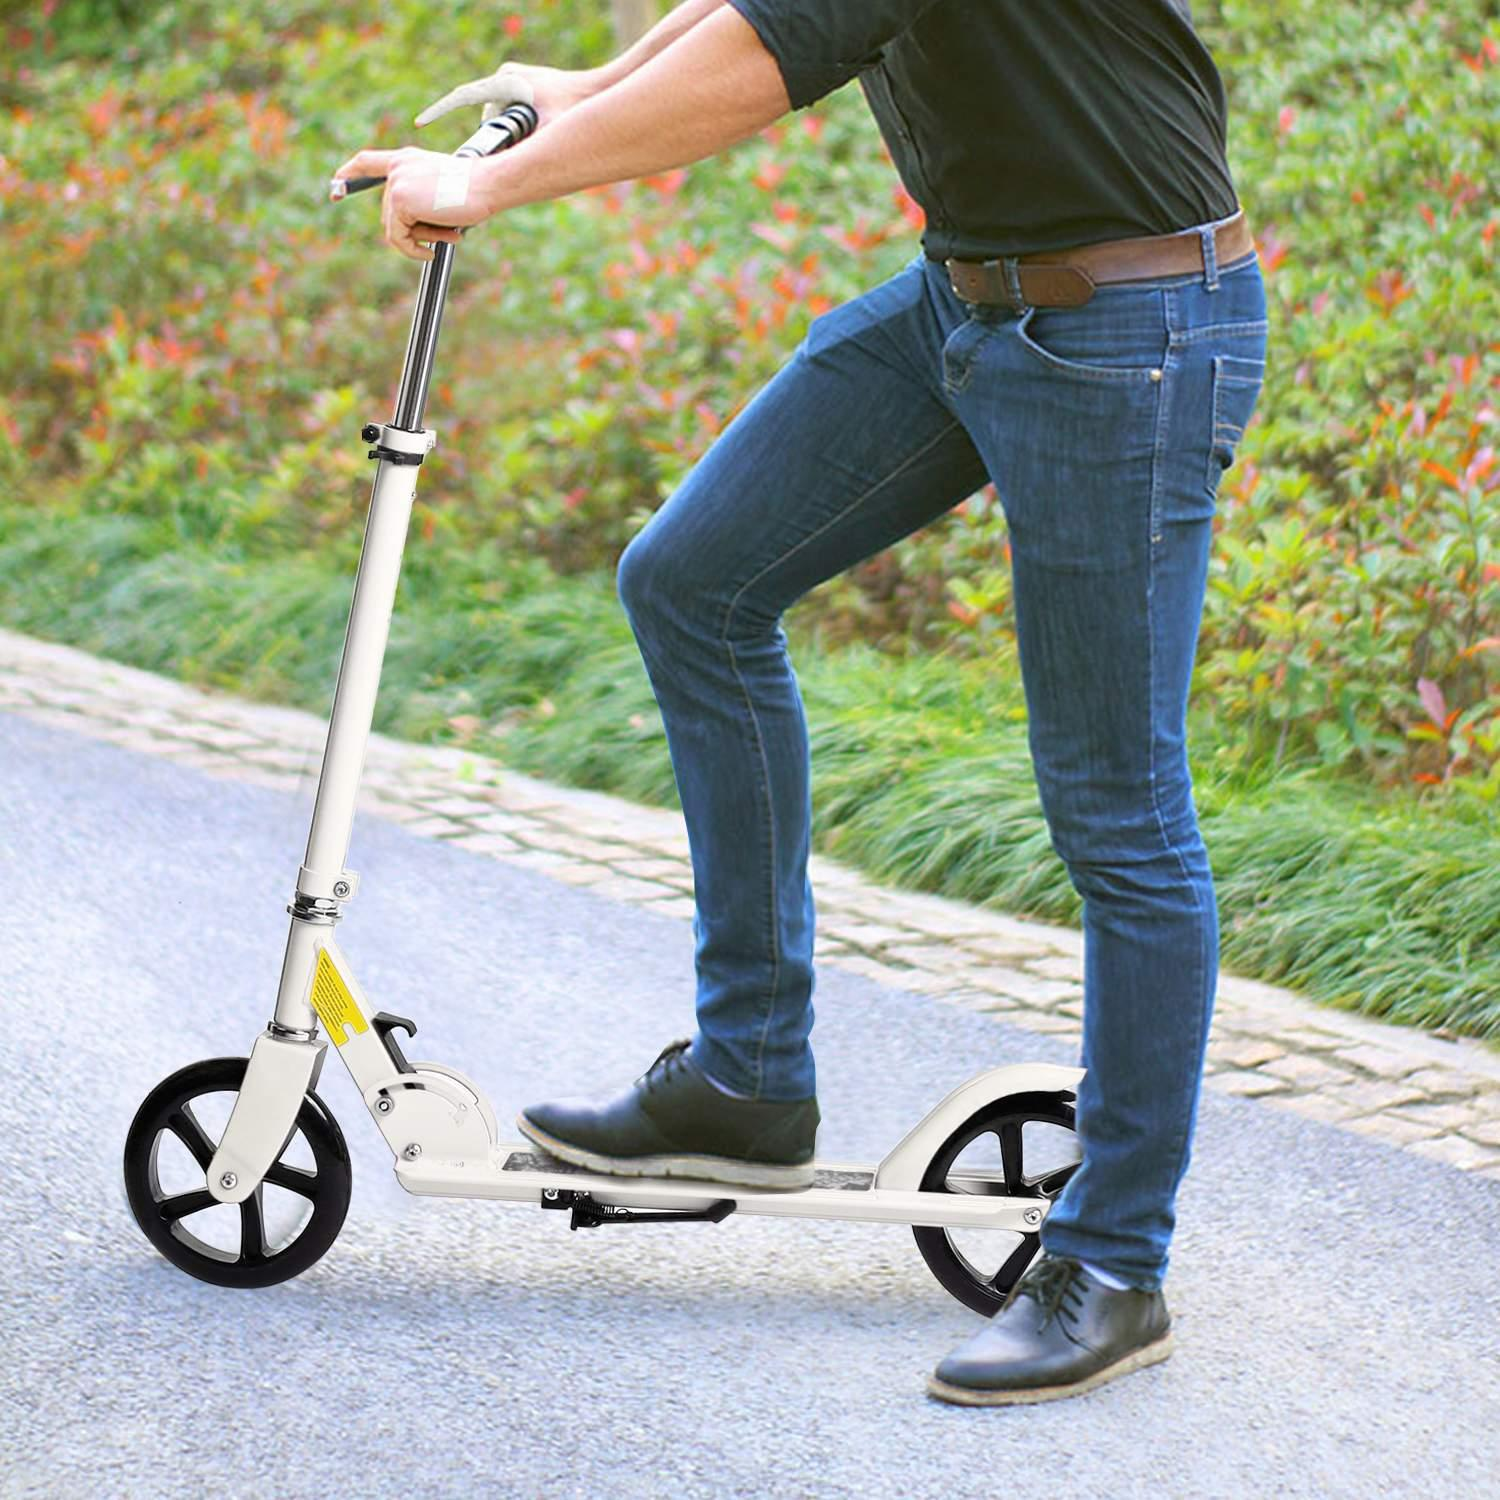 Easy Ride Pro 2-Wheel Folding Kick Scooter Adjustable Adult Scooter Aluminium Alloy by